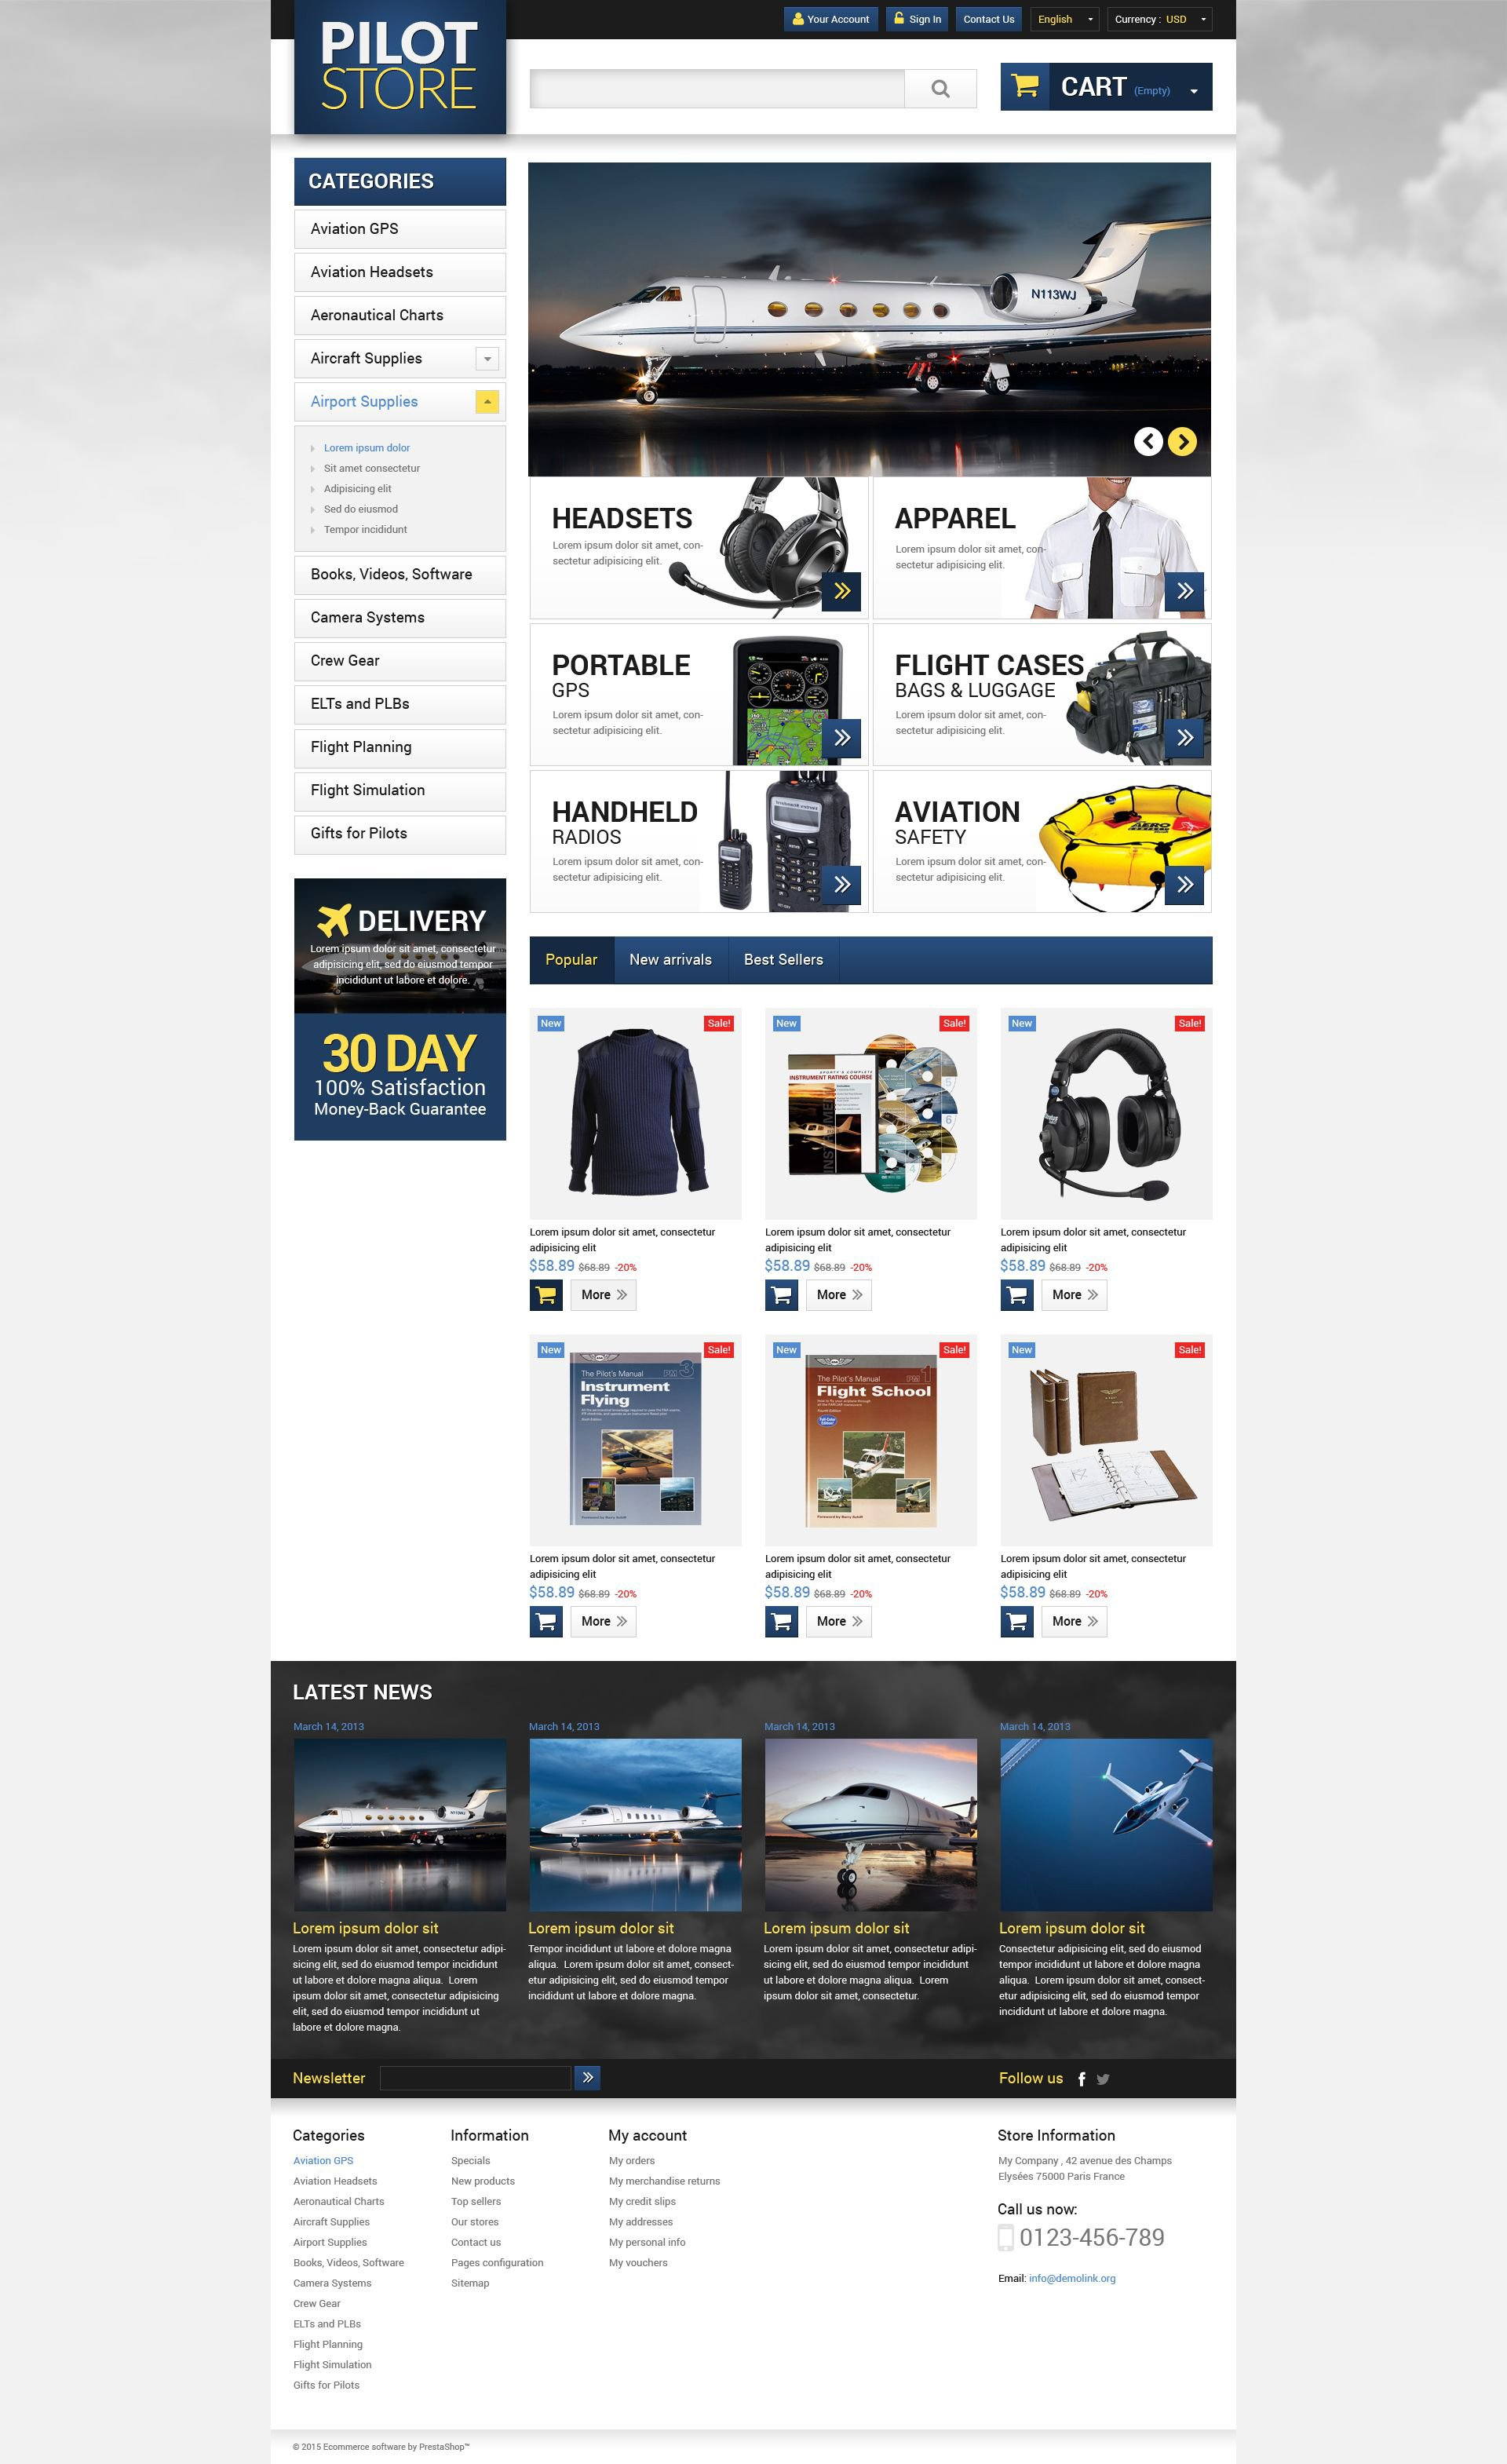 The Pilot Store PrestaShop Design 53097, one of the best PrestaShop themes of its kind (transportation, most popular), also known as pilot store PrestaShop template, shop PrestaShop template, supplies PrestaShop template, aviation PrestaShop template, aircraft PrestaShop template, accessories PrestaShop template, flight PrestaShop template, training PrestaShop template, crewgear PrestaShop template, headsets PrestaShop template, bags PrestaShop template, guides PrestaShop template, books and related with pilot store, shop, supplies, aviation, aircraft, accessories, flight, training, crewgear, headsets, bags, guides, books, etc.